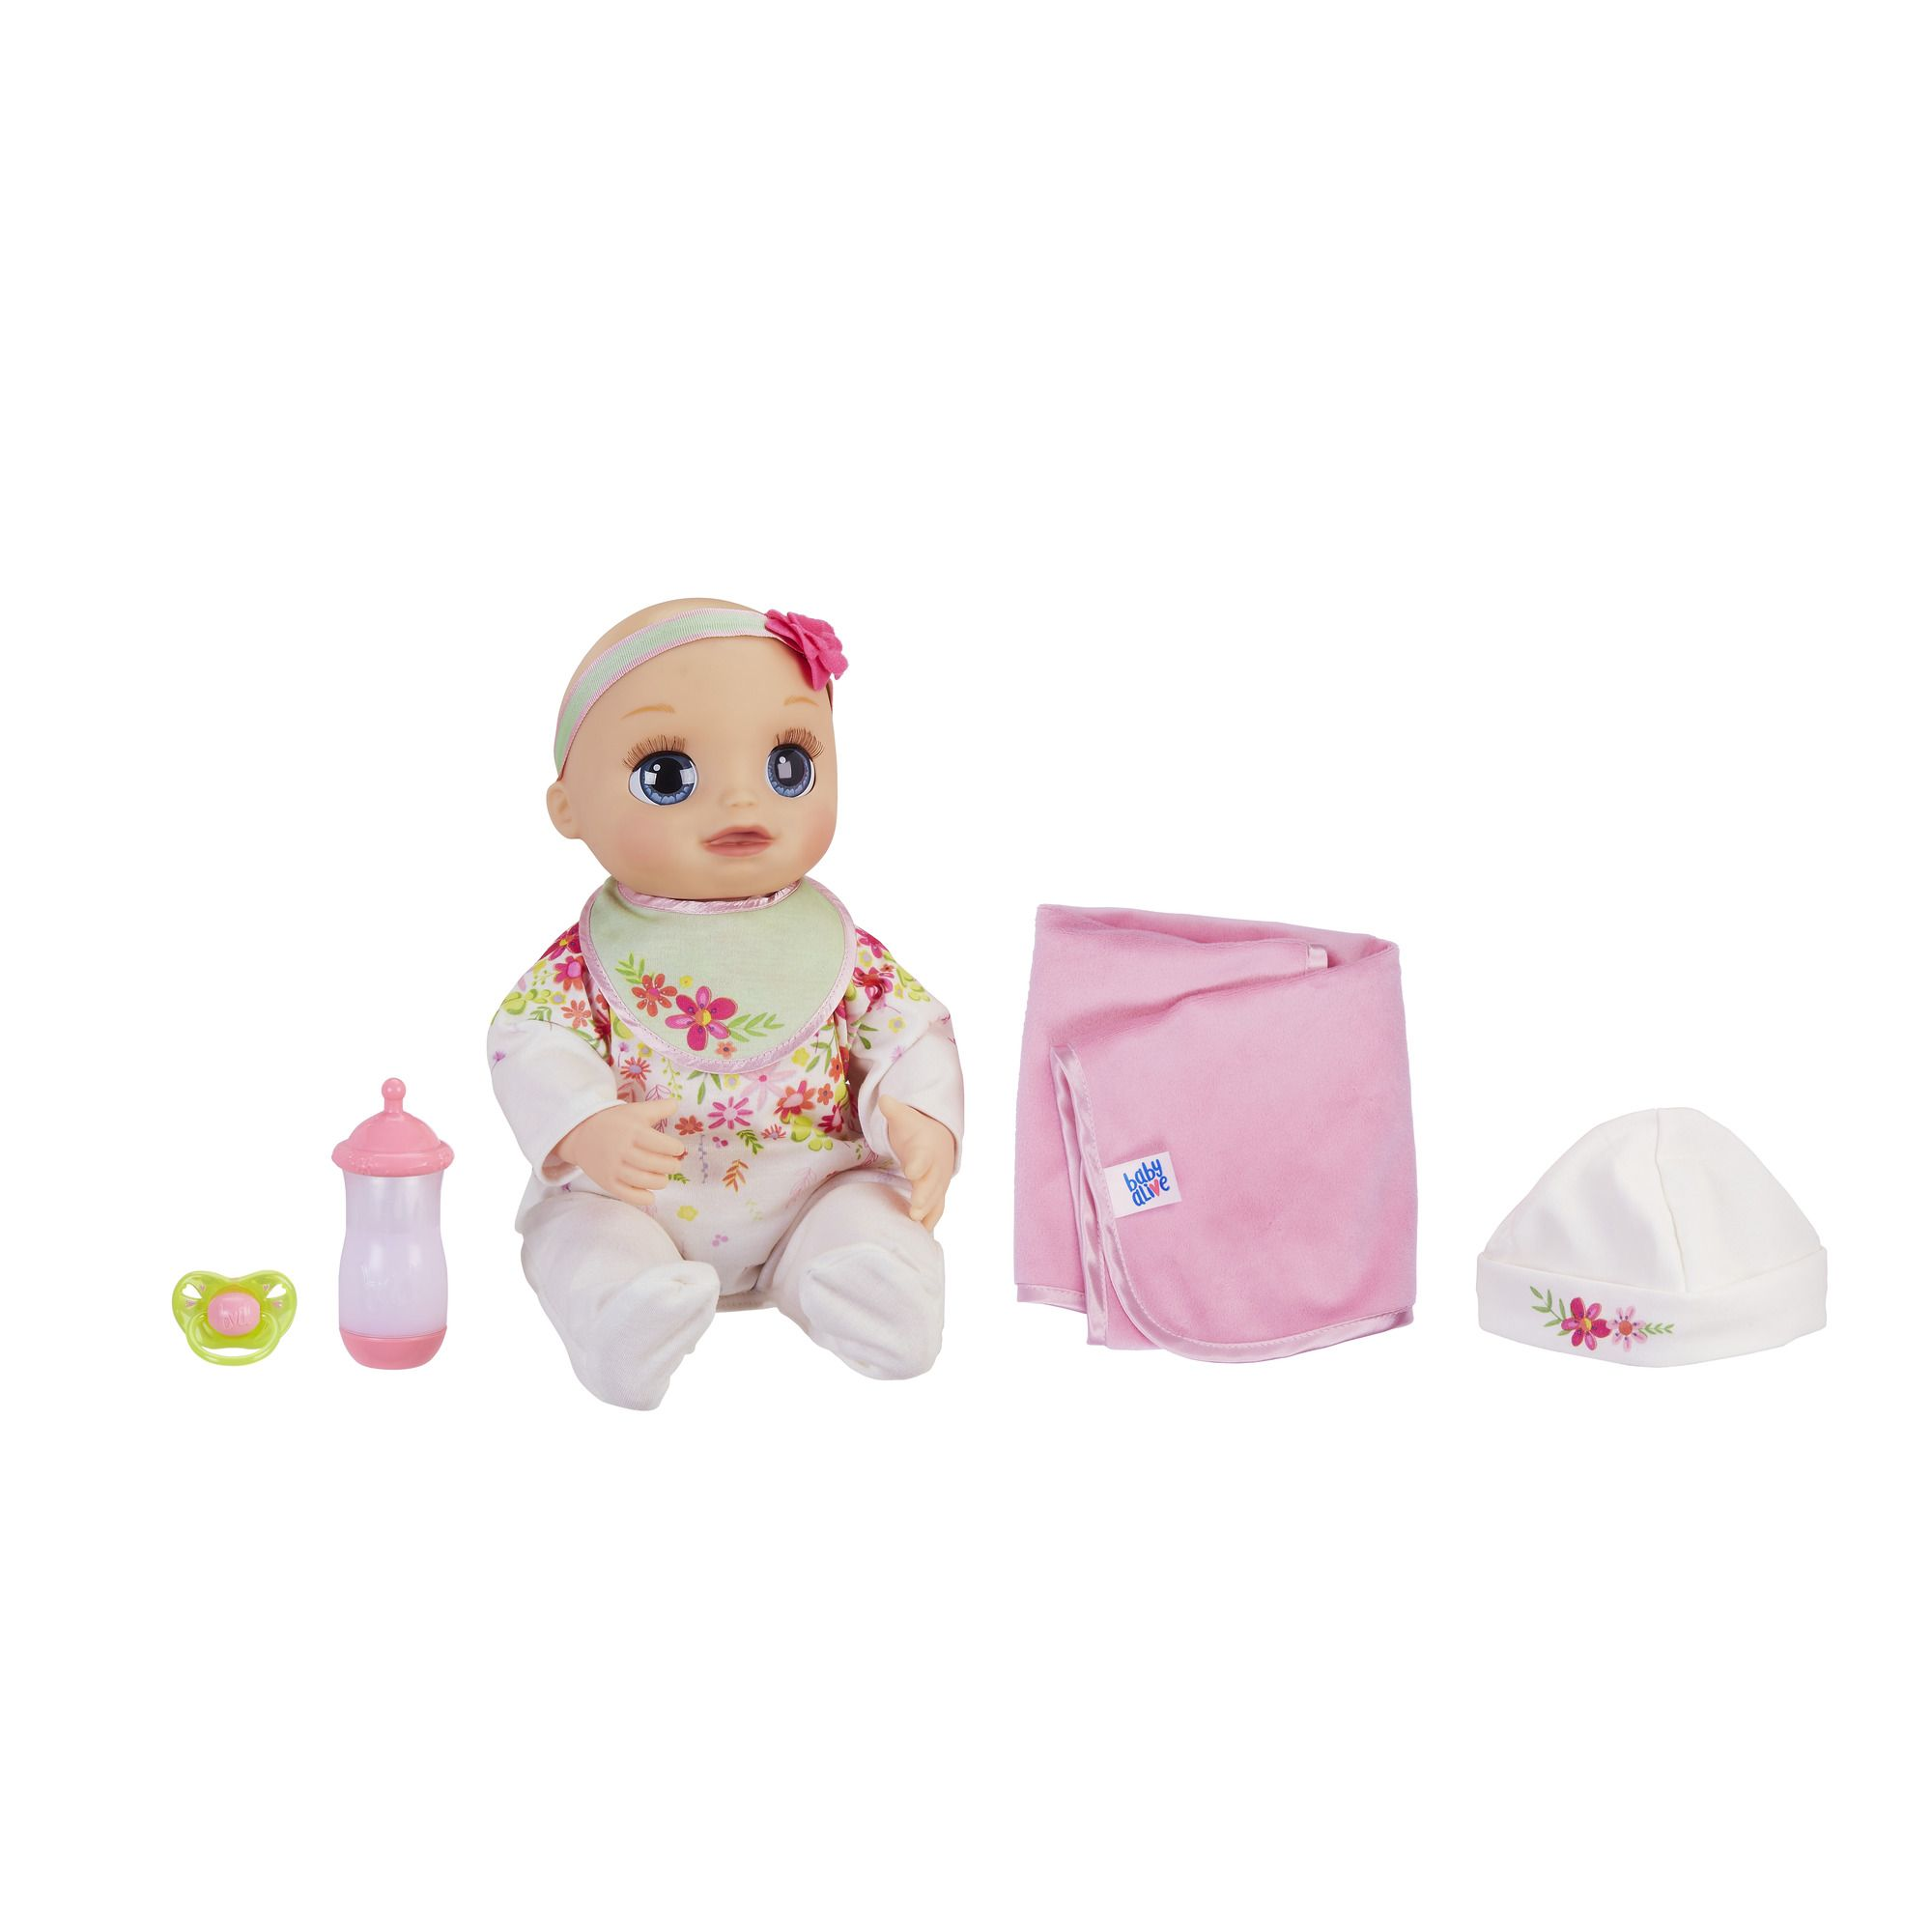 Baby Alive Real As Can Be Baby Blonde Sculpted Hair Multi Color Baby Alive Baby Alive Dolls Realistic Baby Dolls